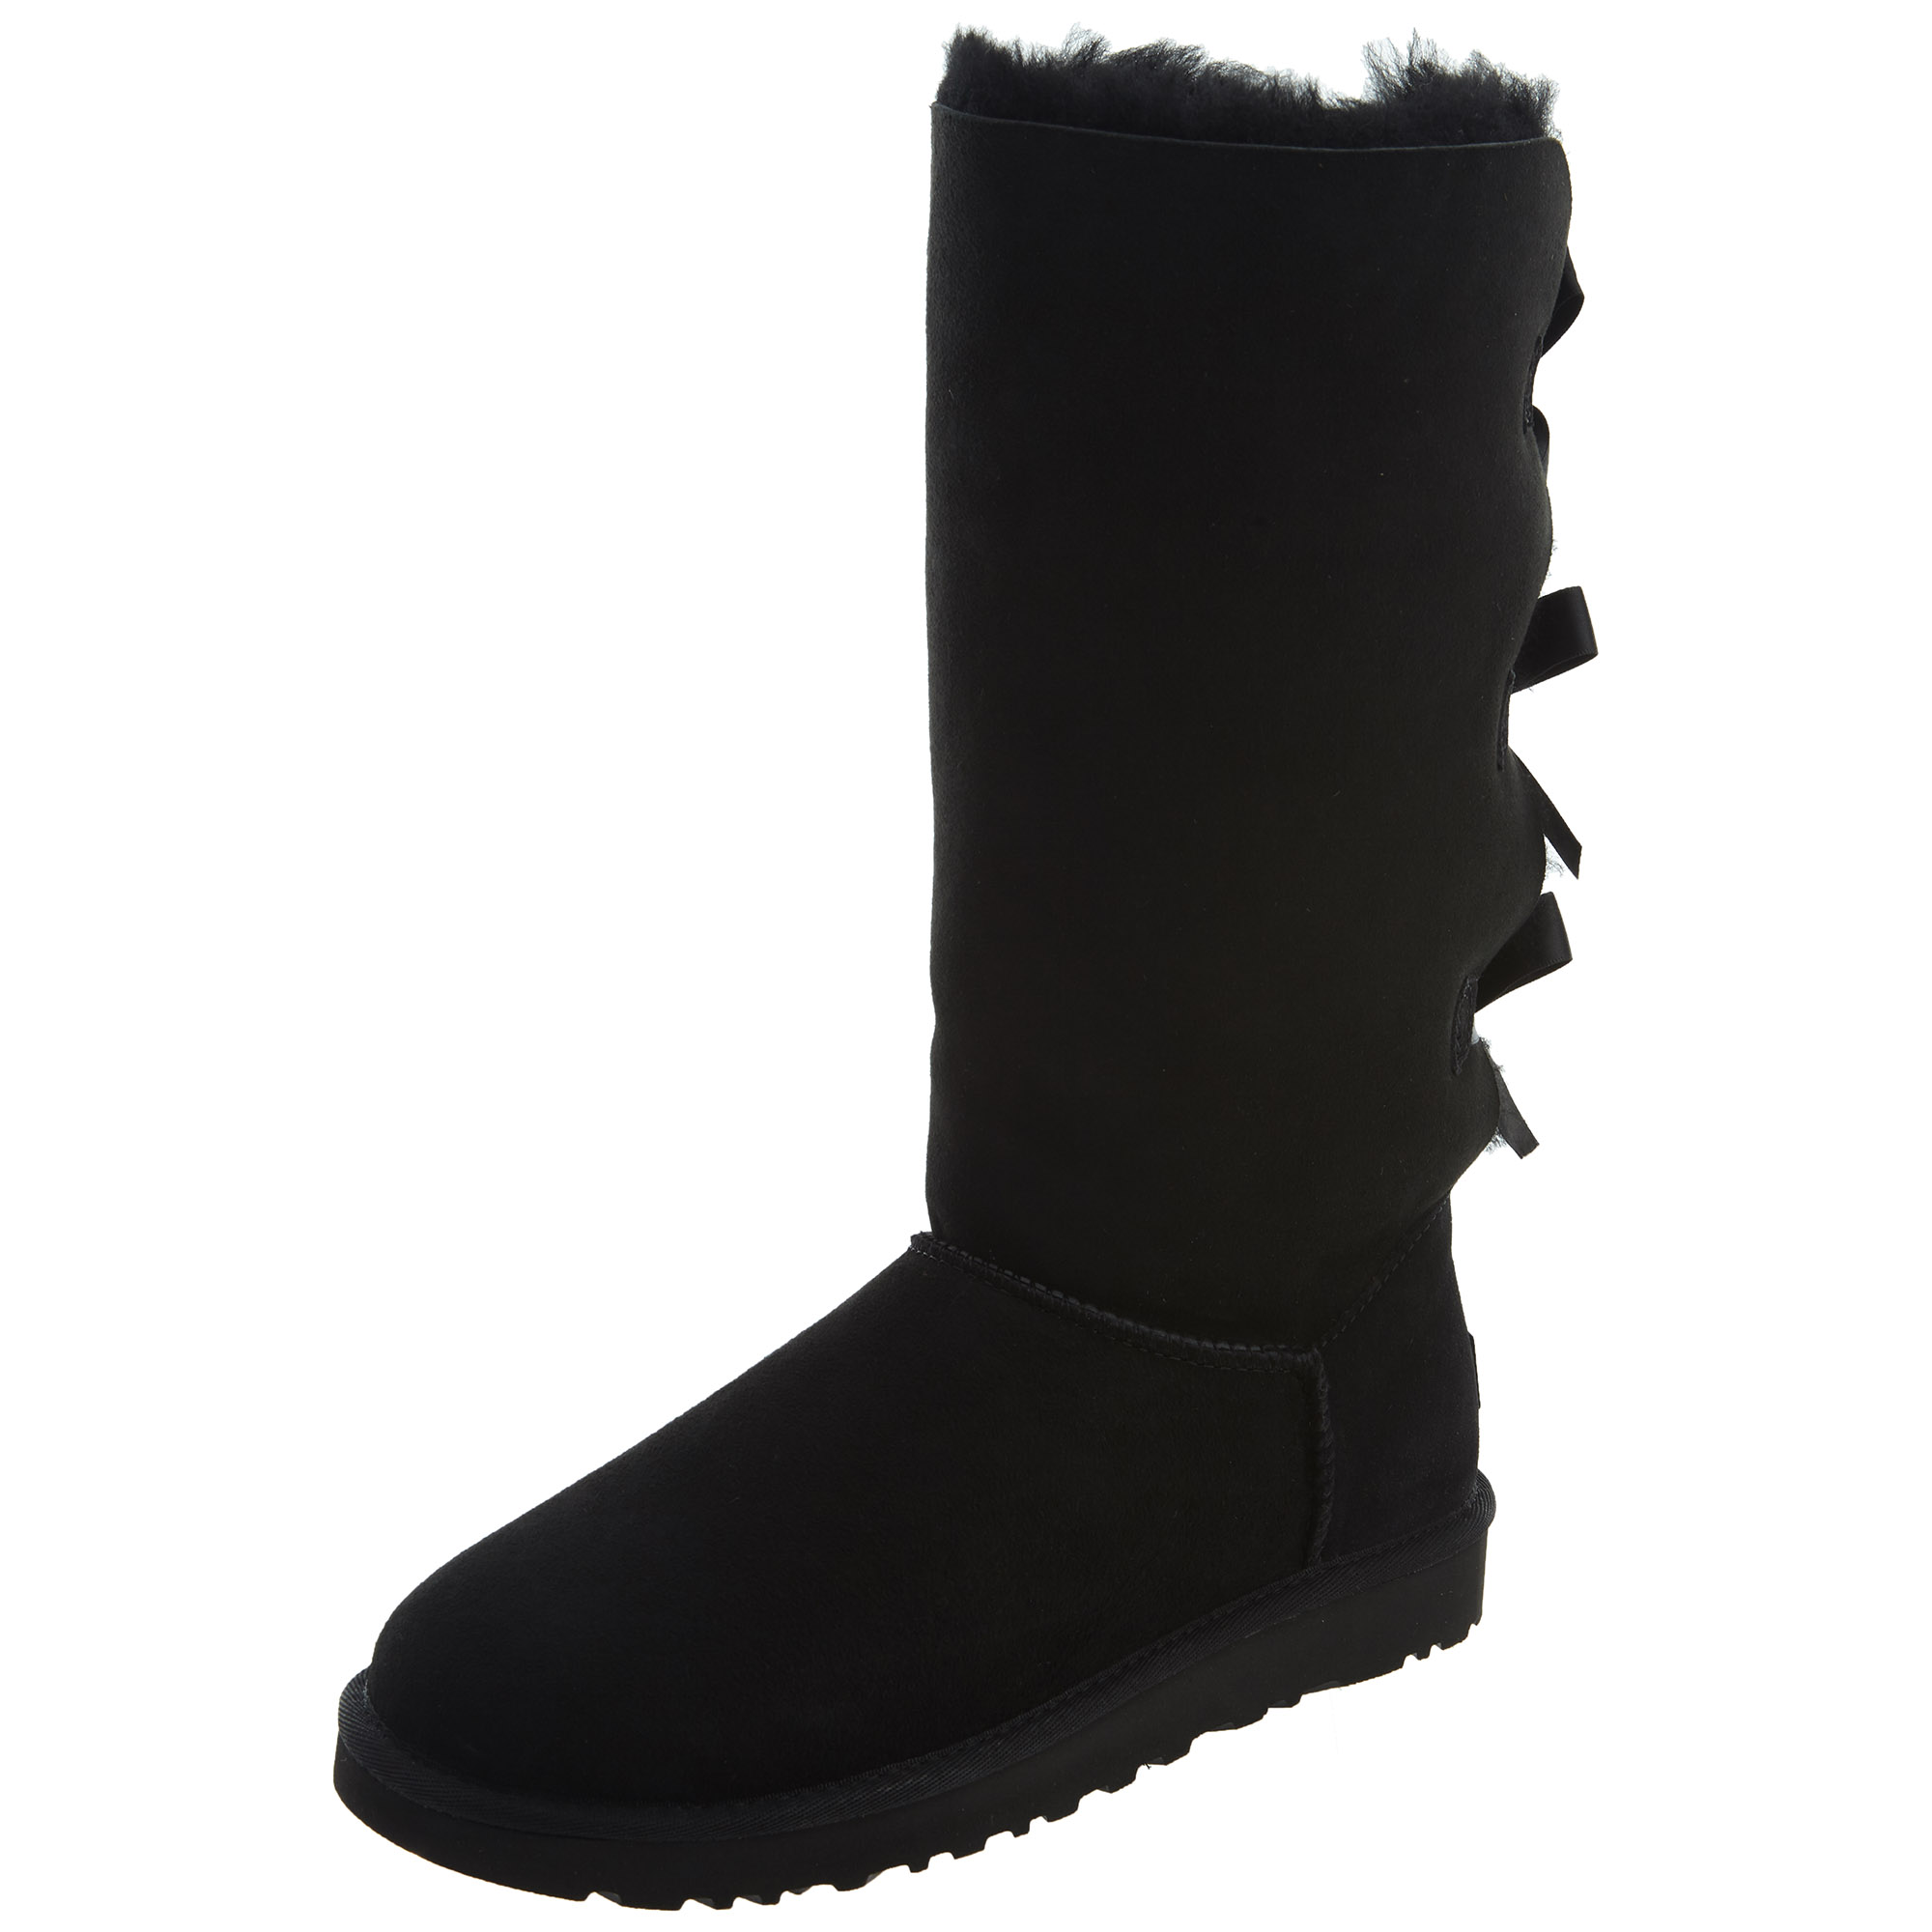 d836c18c8fe5 Details about UGG Womens Bailey Bow Tall II Boots Black 1016434